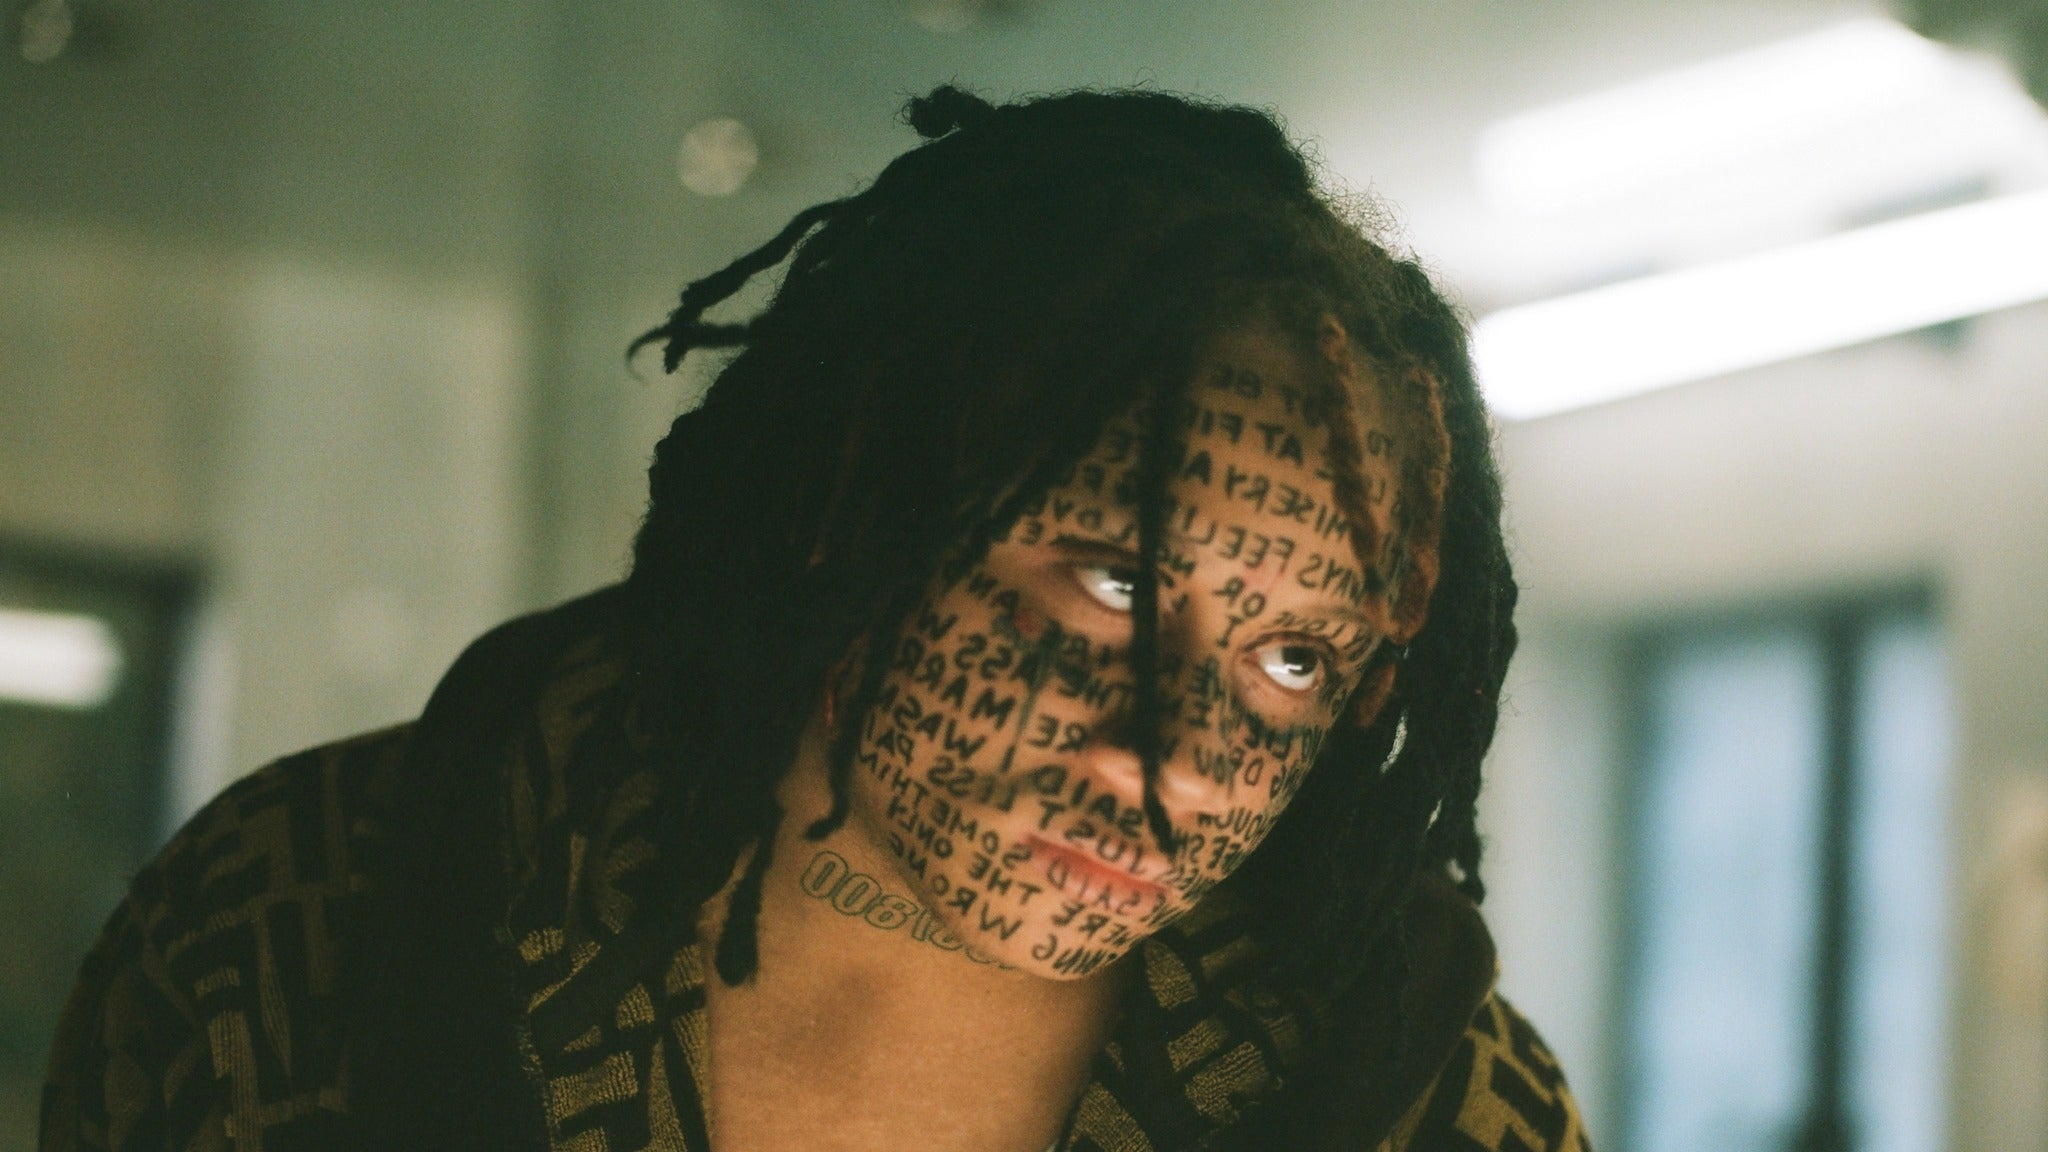 SORRY, THIS EVENT IS NO LONGER ACTIVE<br>Trippie Redd at Echostage - Washington, DC 20018